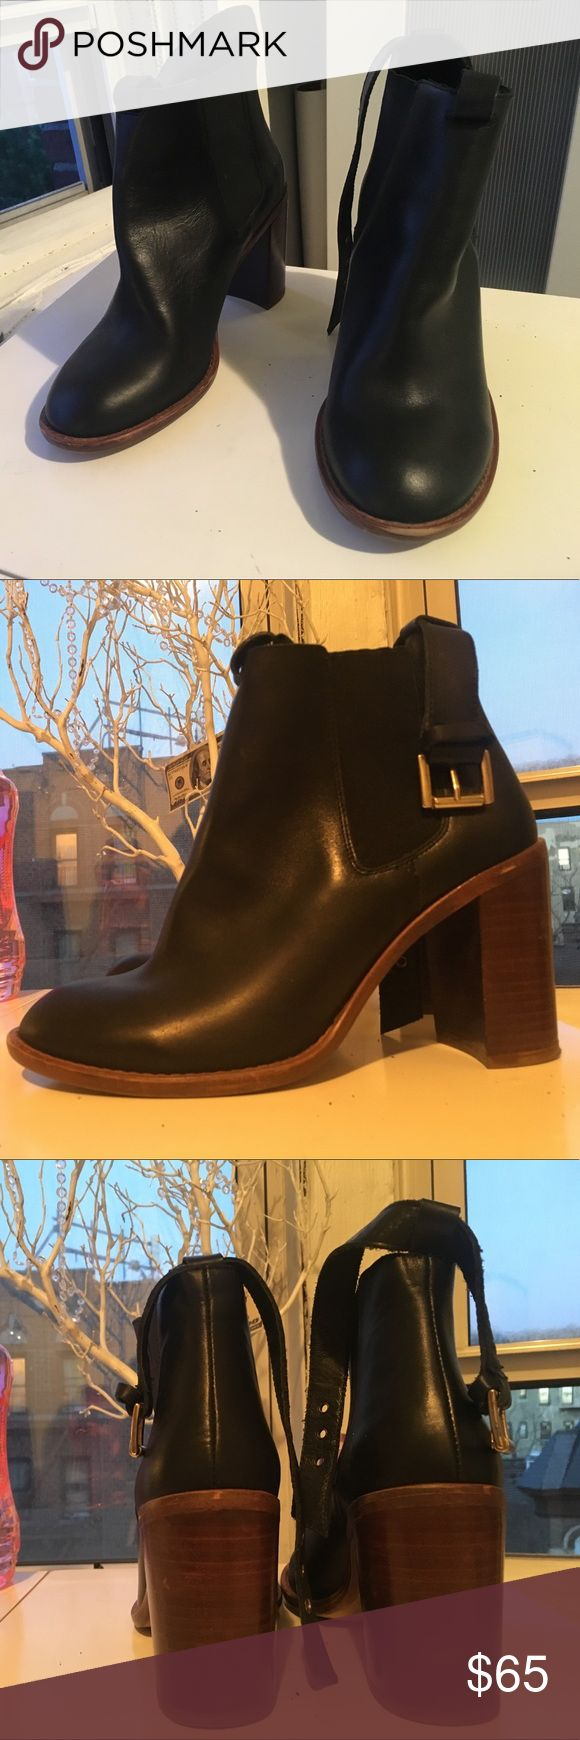 """Black Ankle Boots Used but in good condition. They are comfortable and very fashionable. Brand is """"Kg Kurt Geiger Ankle Boot"""". Shoes Ankle Boots & Booties"""